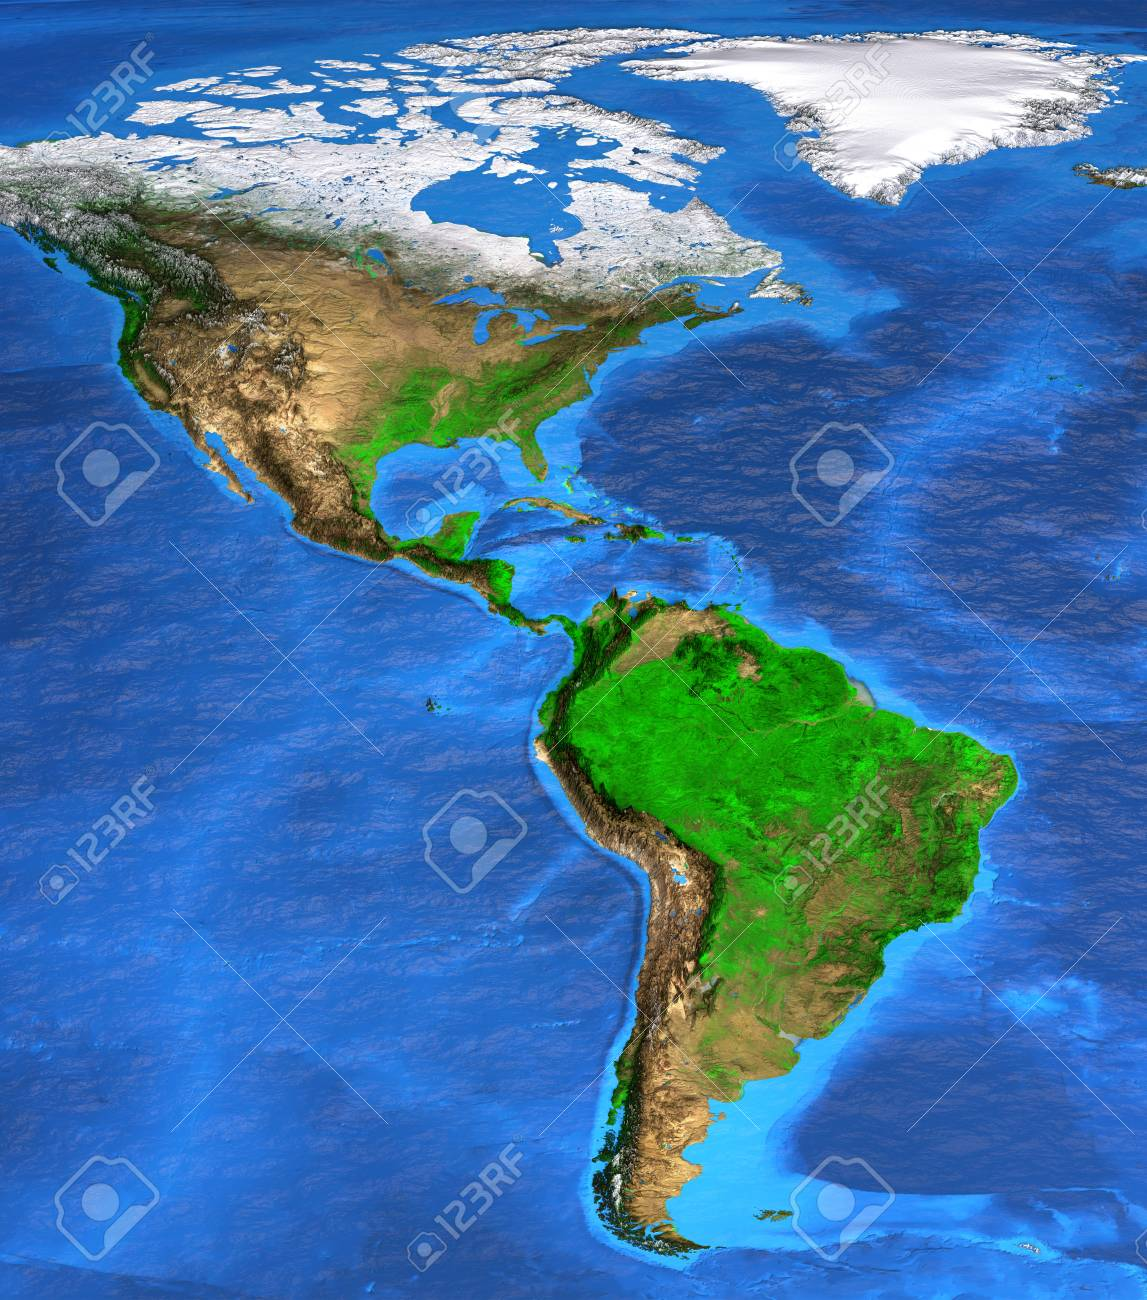 Detailed satellite view of the Earth and its landforms. North.. on hd map of south america, precipitation of south america, labeled map of south america, physical features of south america, statistics of south america, google maps south america, physical map of south america, thematic map of south america, large map of south america, satellite maps of homes, north america, map of africa and south america, satellite maps of usa, complete map of south america, blank outline map of south america, a blank map of south america, full map of south america, current map of south america, google earth south america, topographic map of south america,